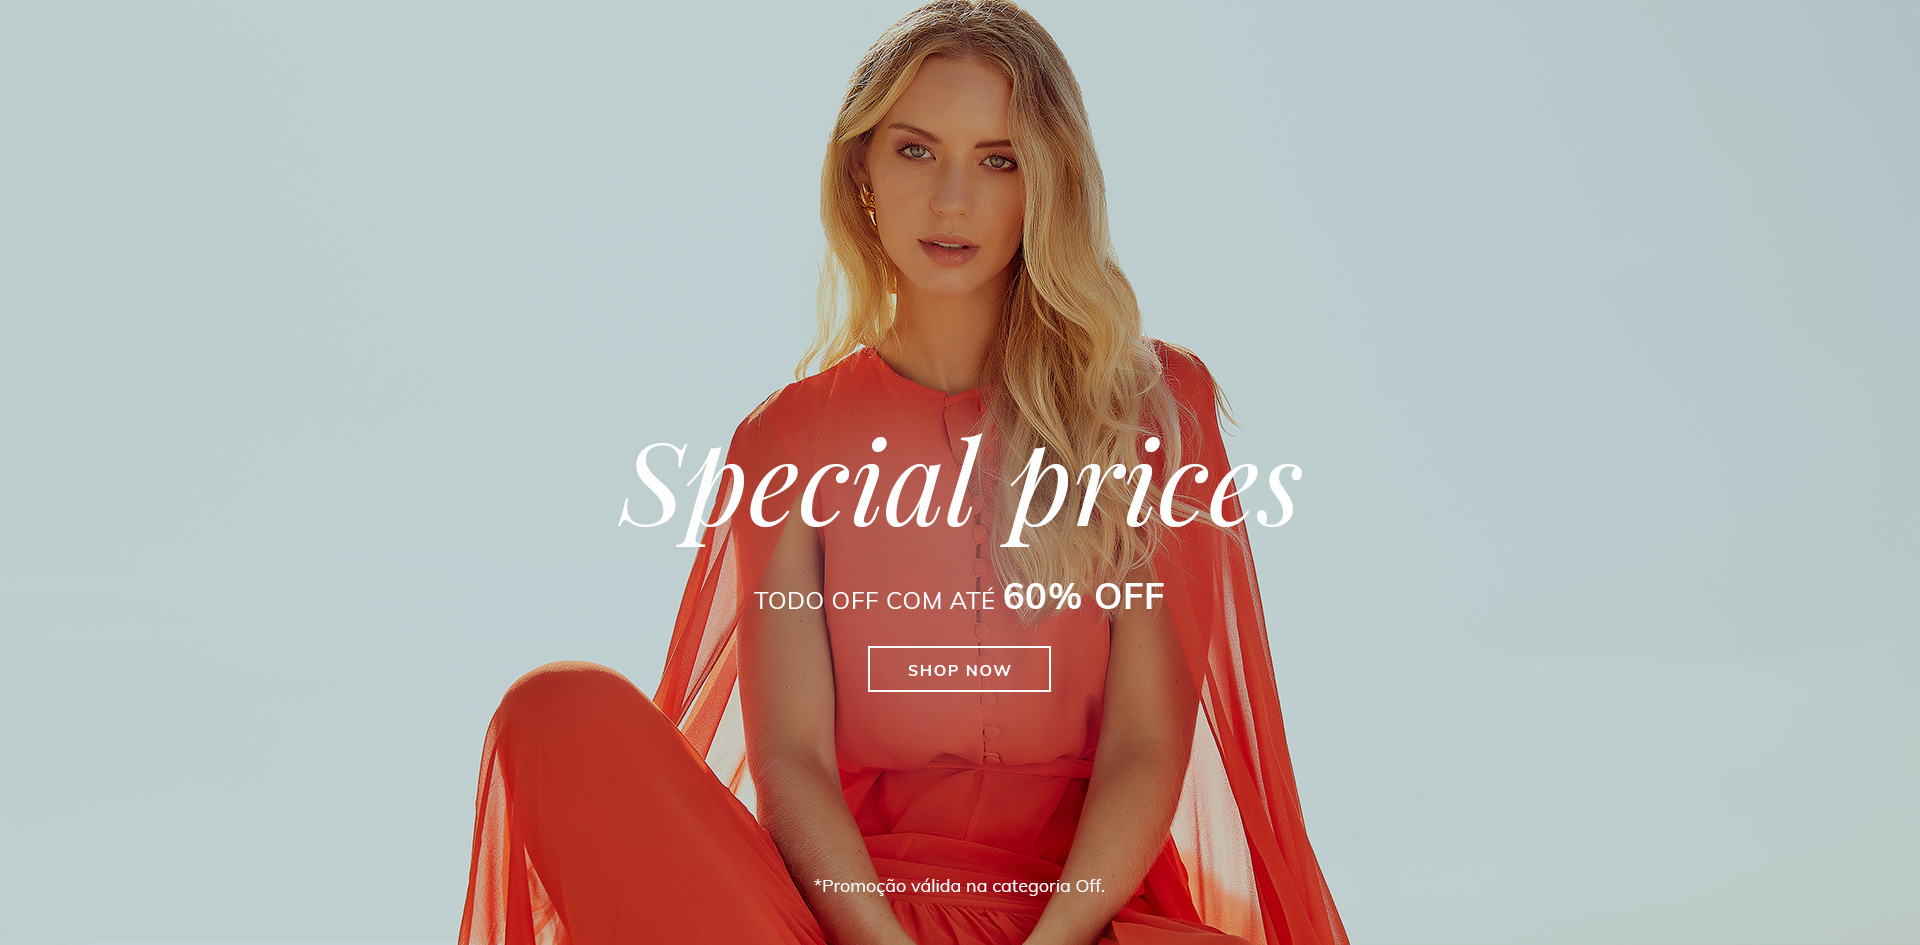 special prices - OFF